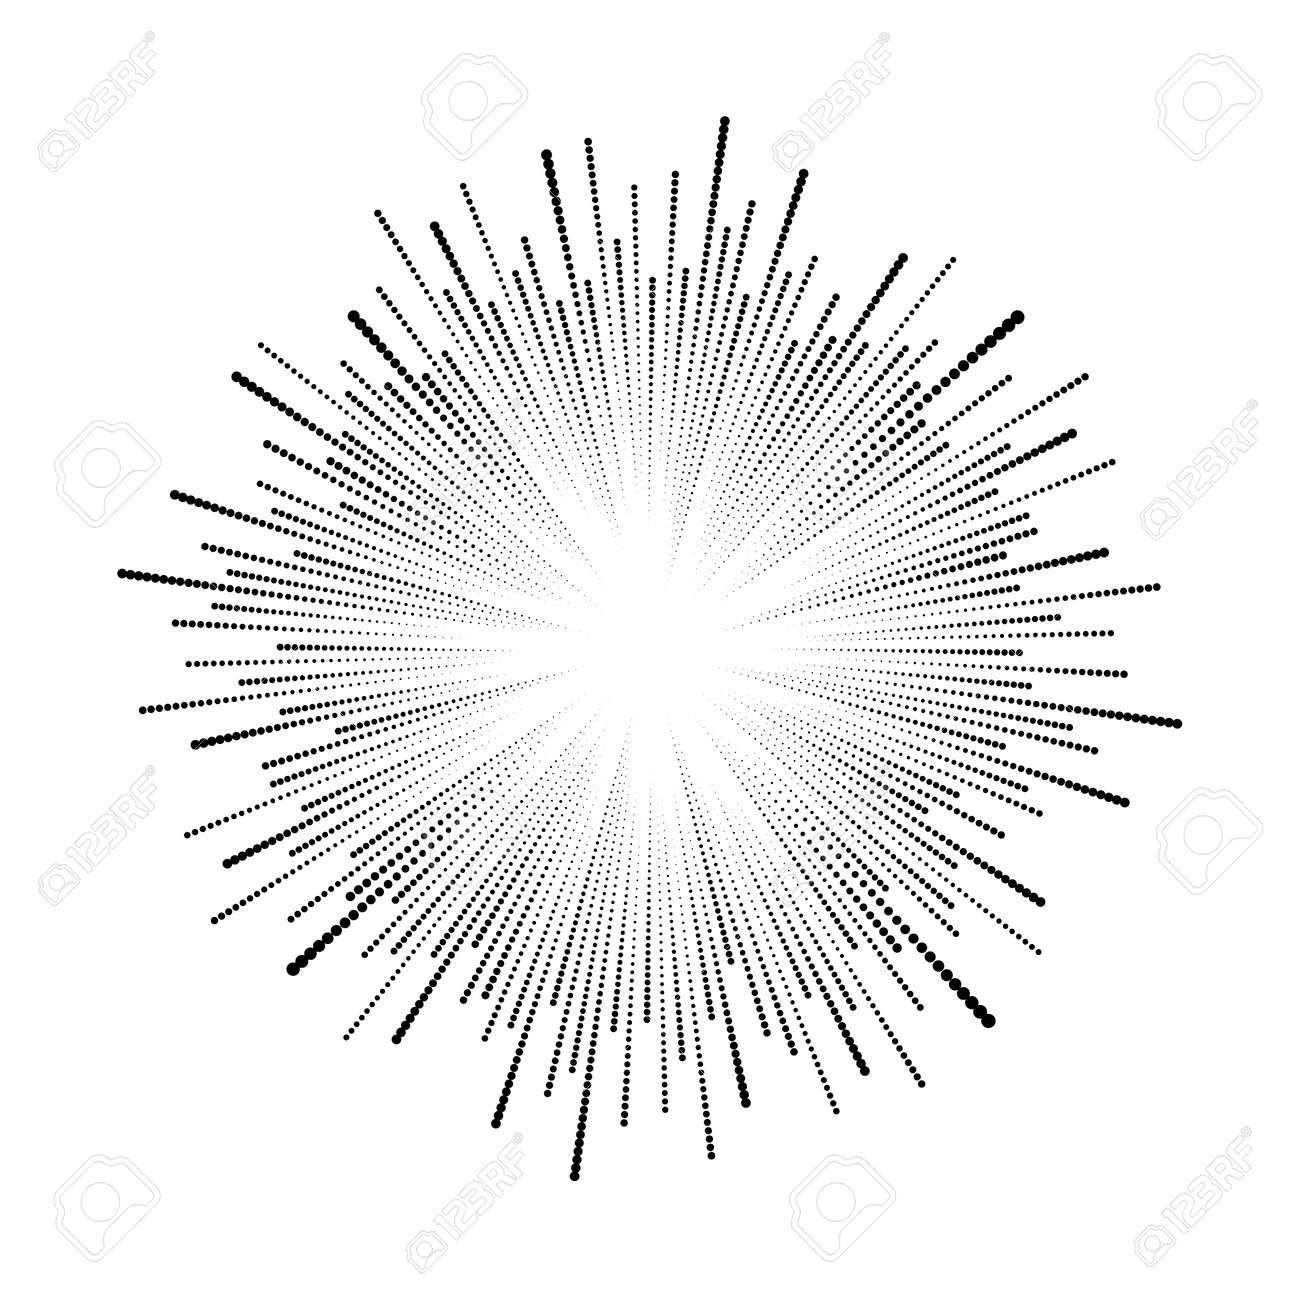 Black radial halftone dotted speed lines. Round form. Explosion background. Star rays. Sunburst. Fireworks. Handwritten design element for frames, prints, tattoo, web, template and comic books - 155814272